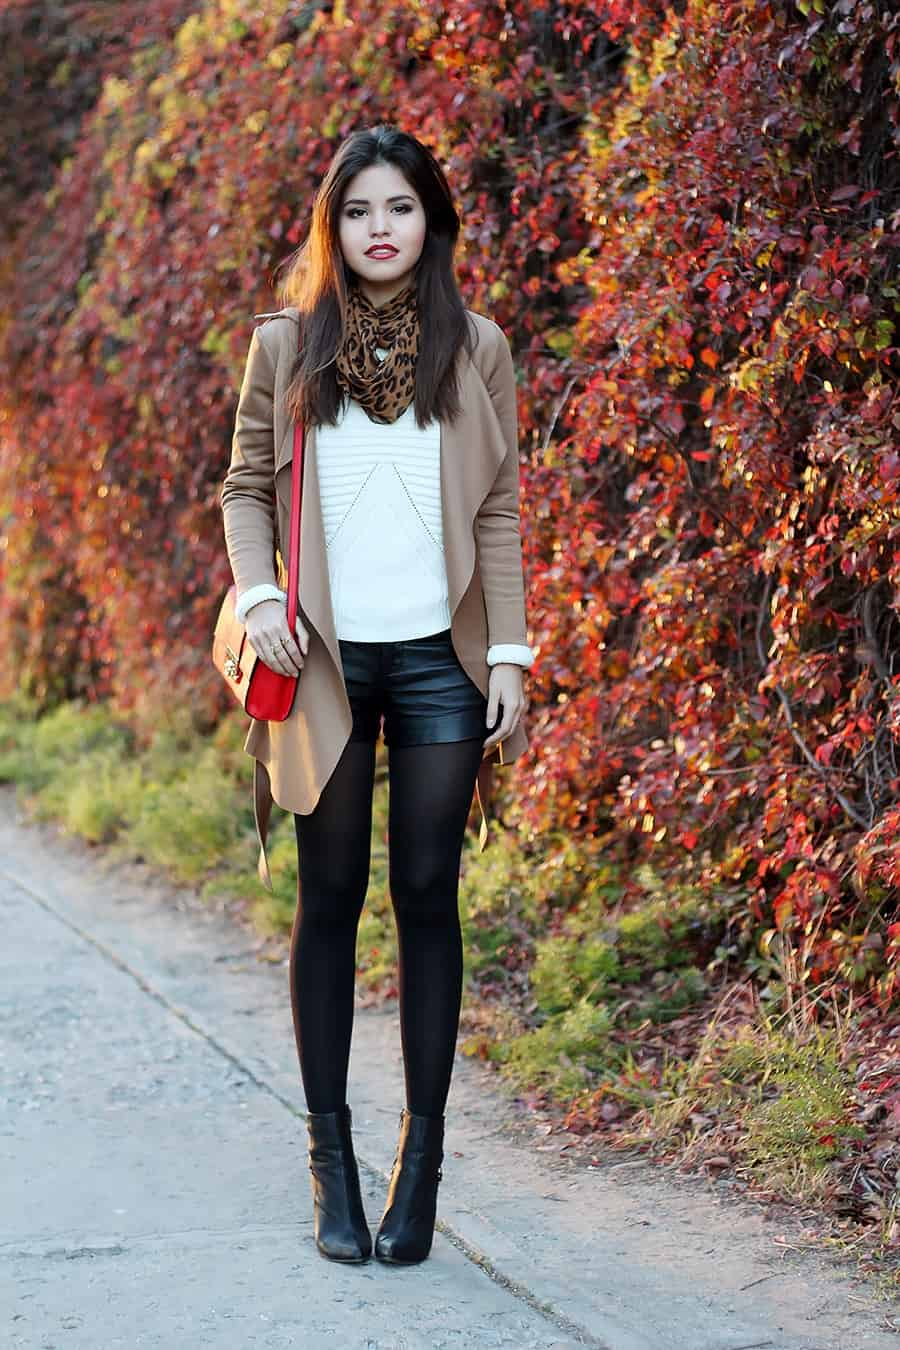 How To Wear SHORTS In Autumn & Winter? – The Fashion Tag Blog